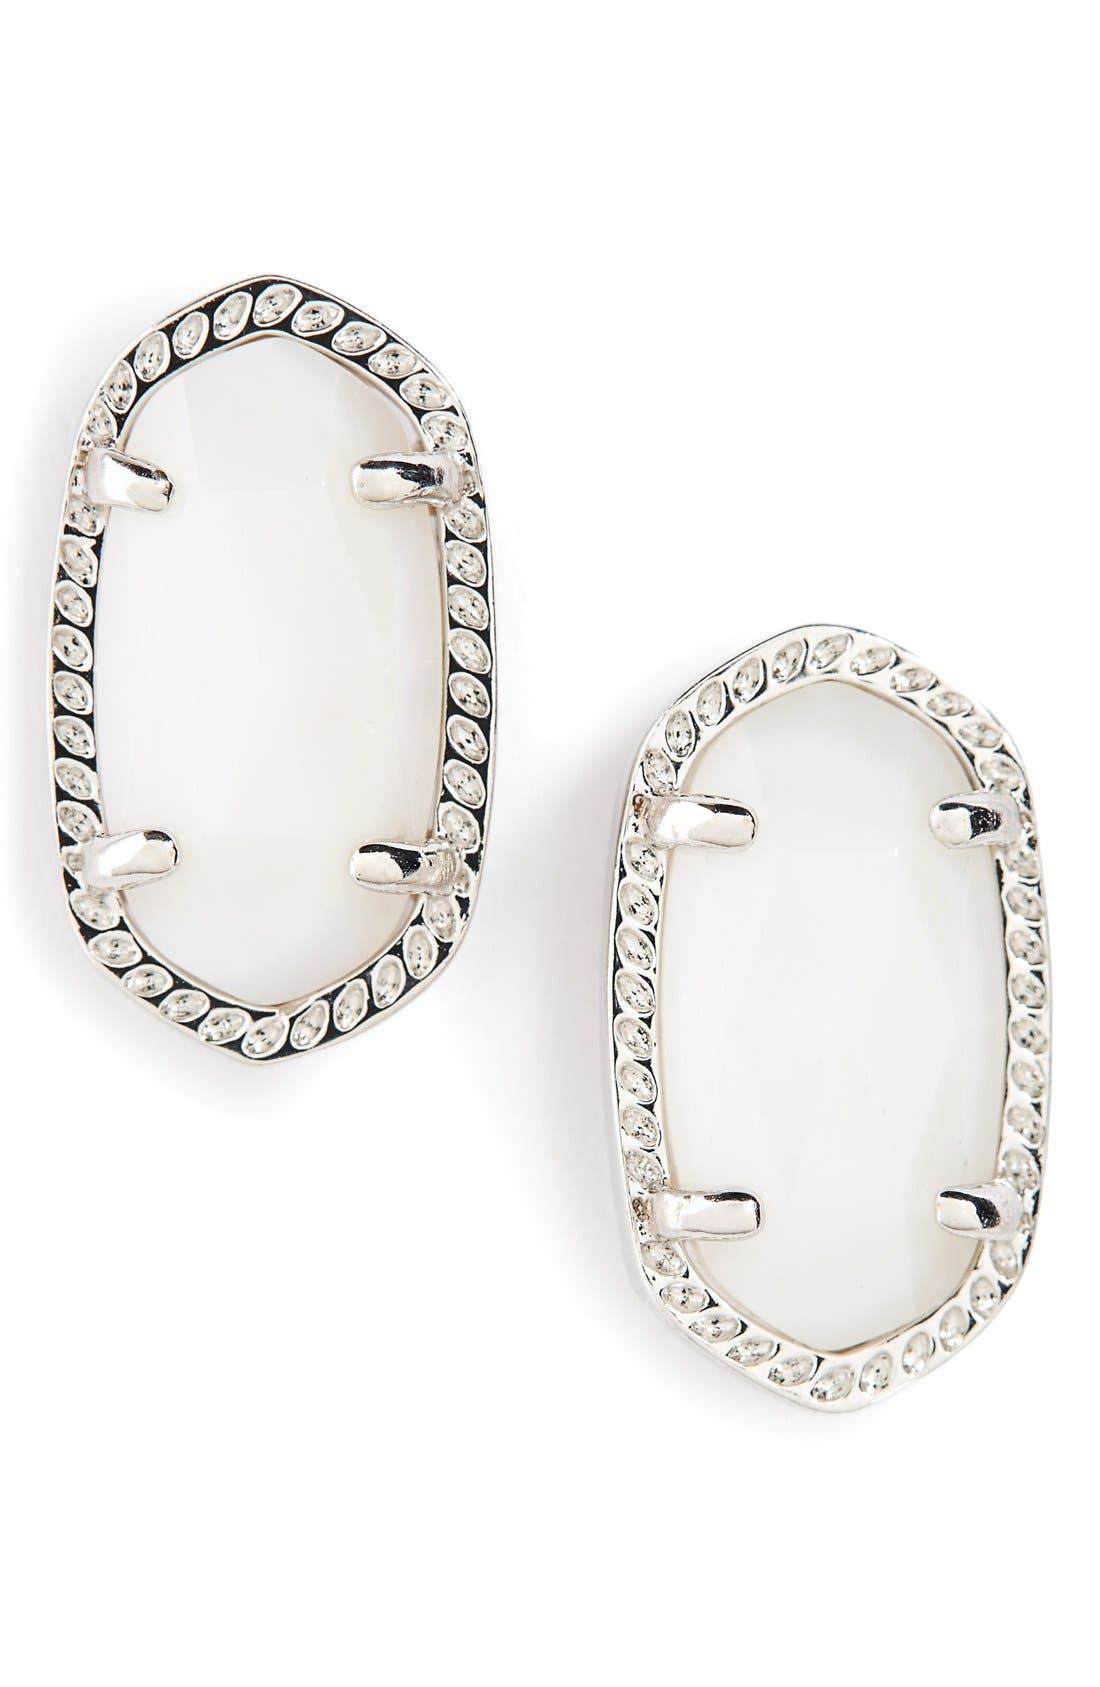 Main Image - Kendra Scott Ellie Oval Stone Stud Earrings